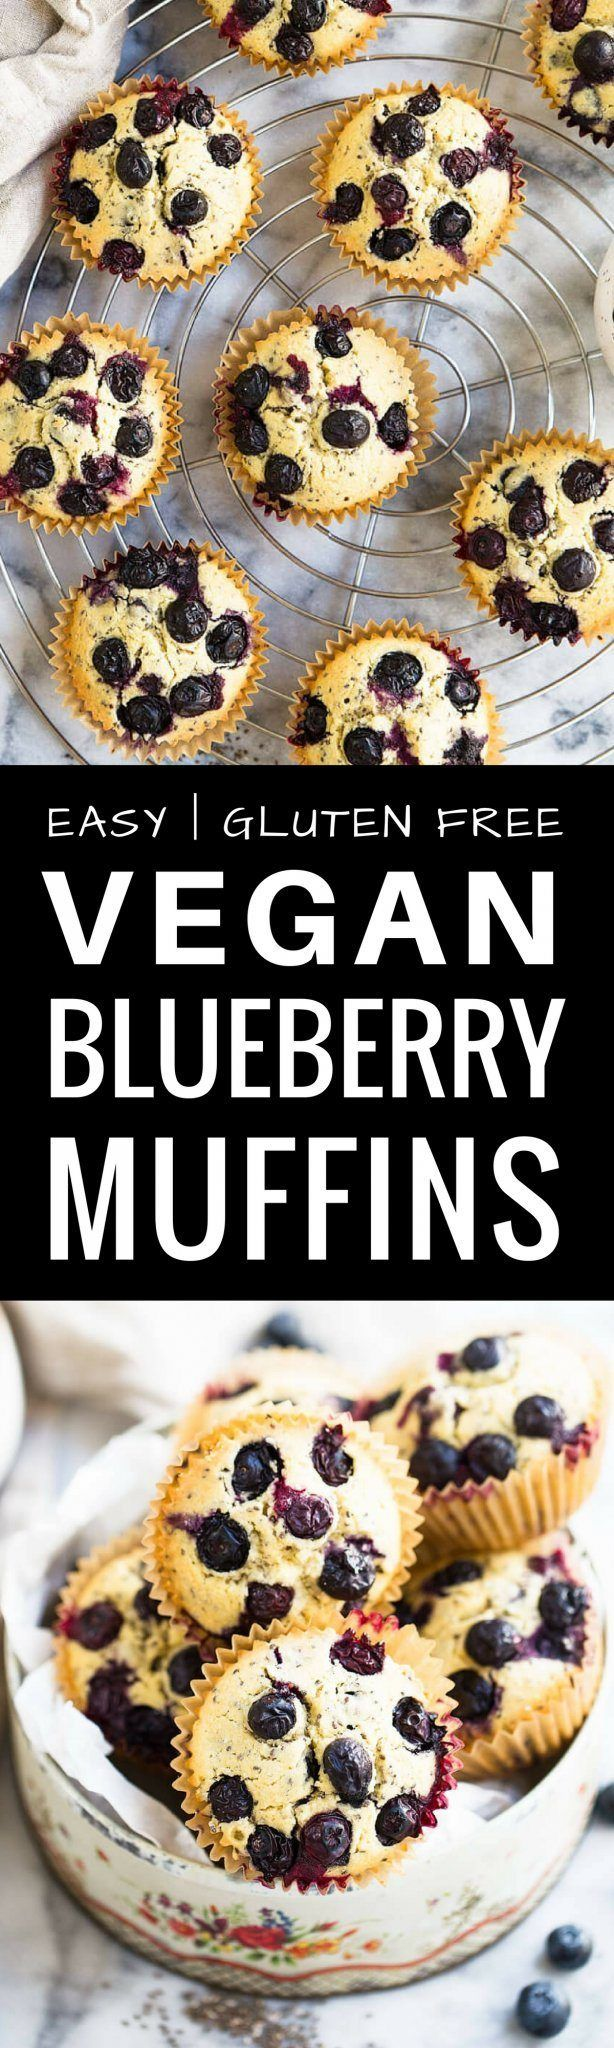 Best Gluten-Free Vegan Blueberry Muffins recipe he…